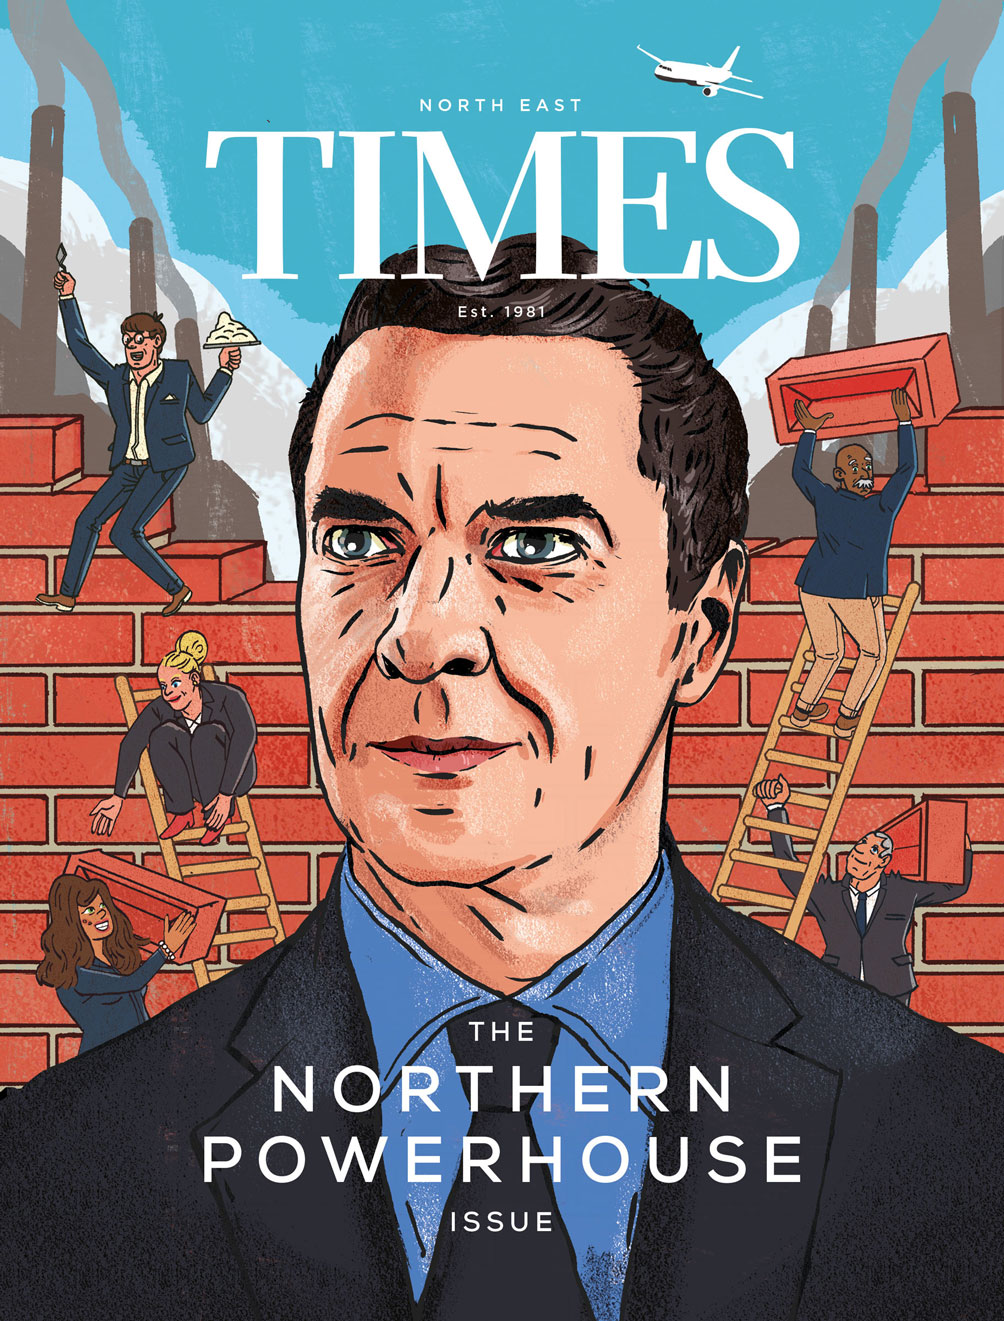 Cover illustration for North East Times